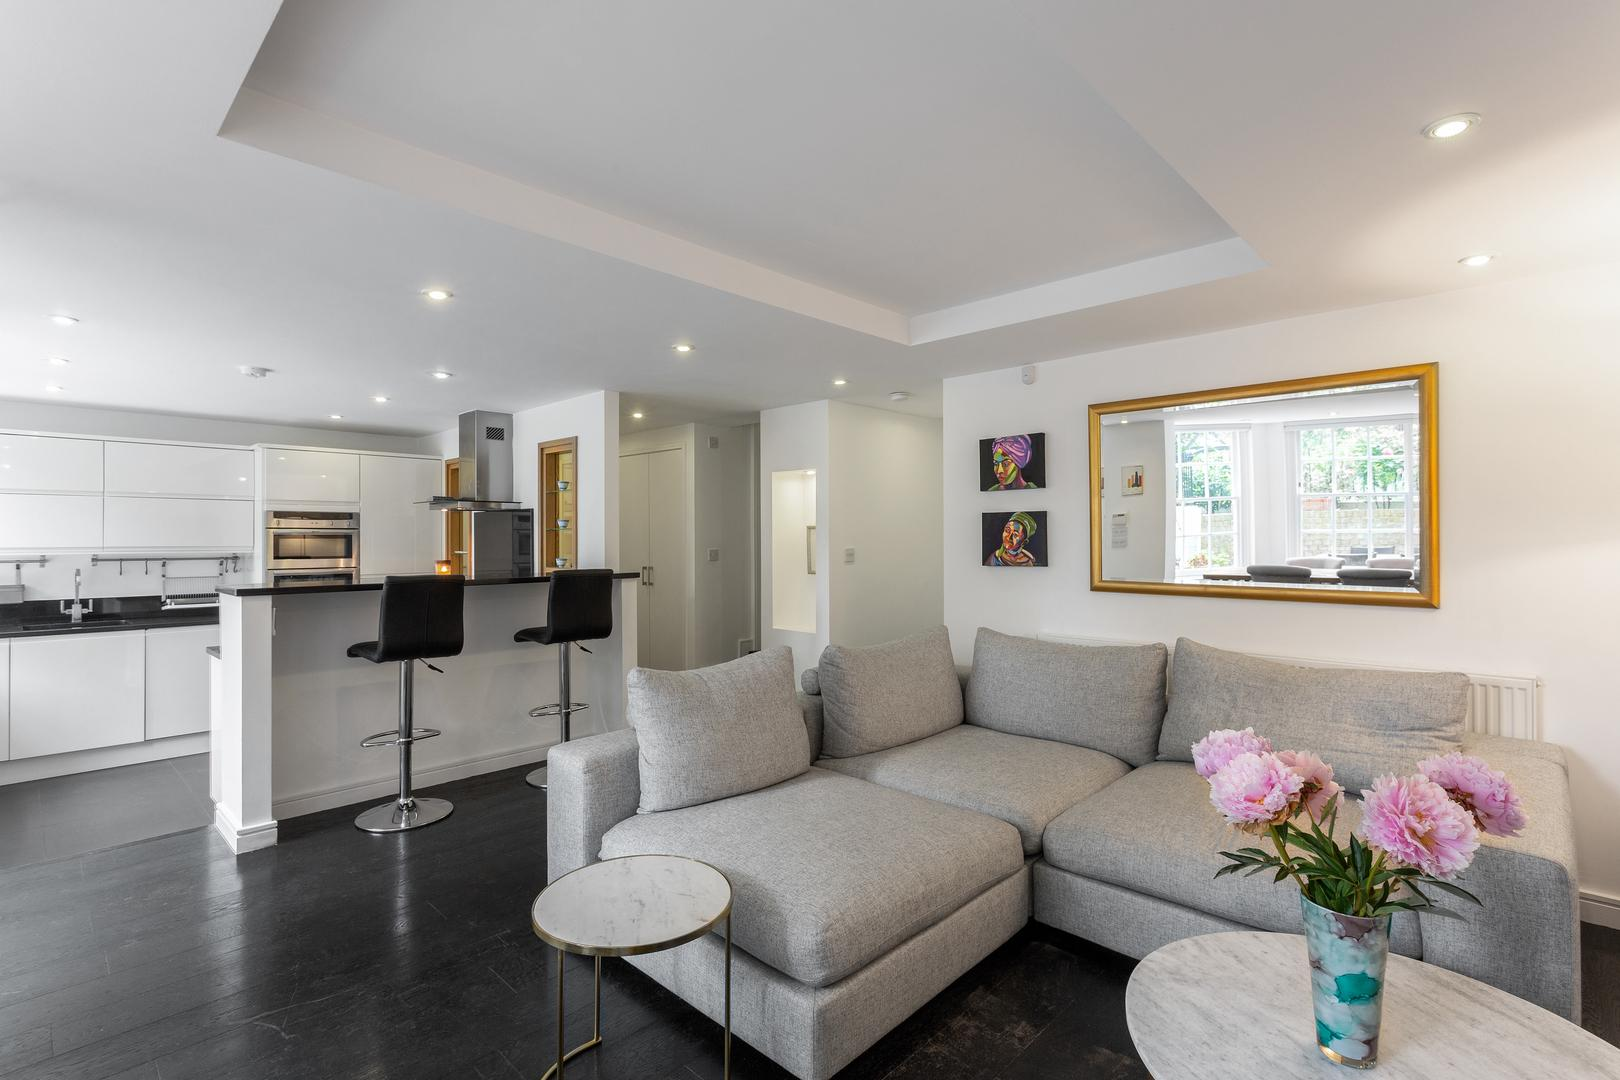 Property Image 1 - Sleek Bright Hampstead Apartment Close to the Tube